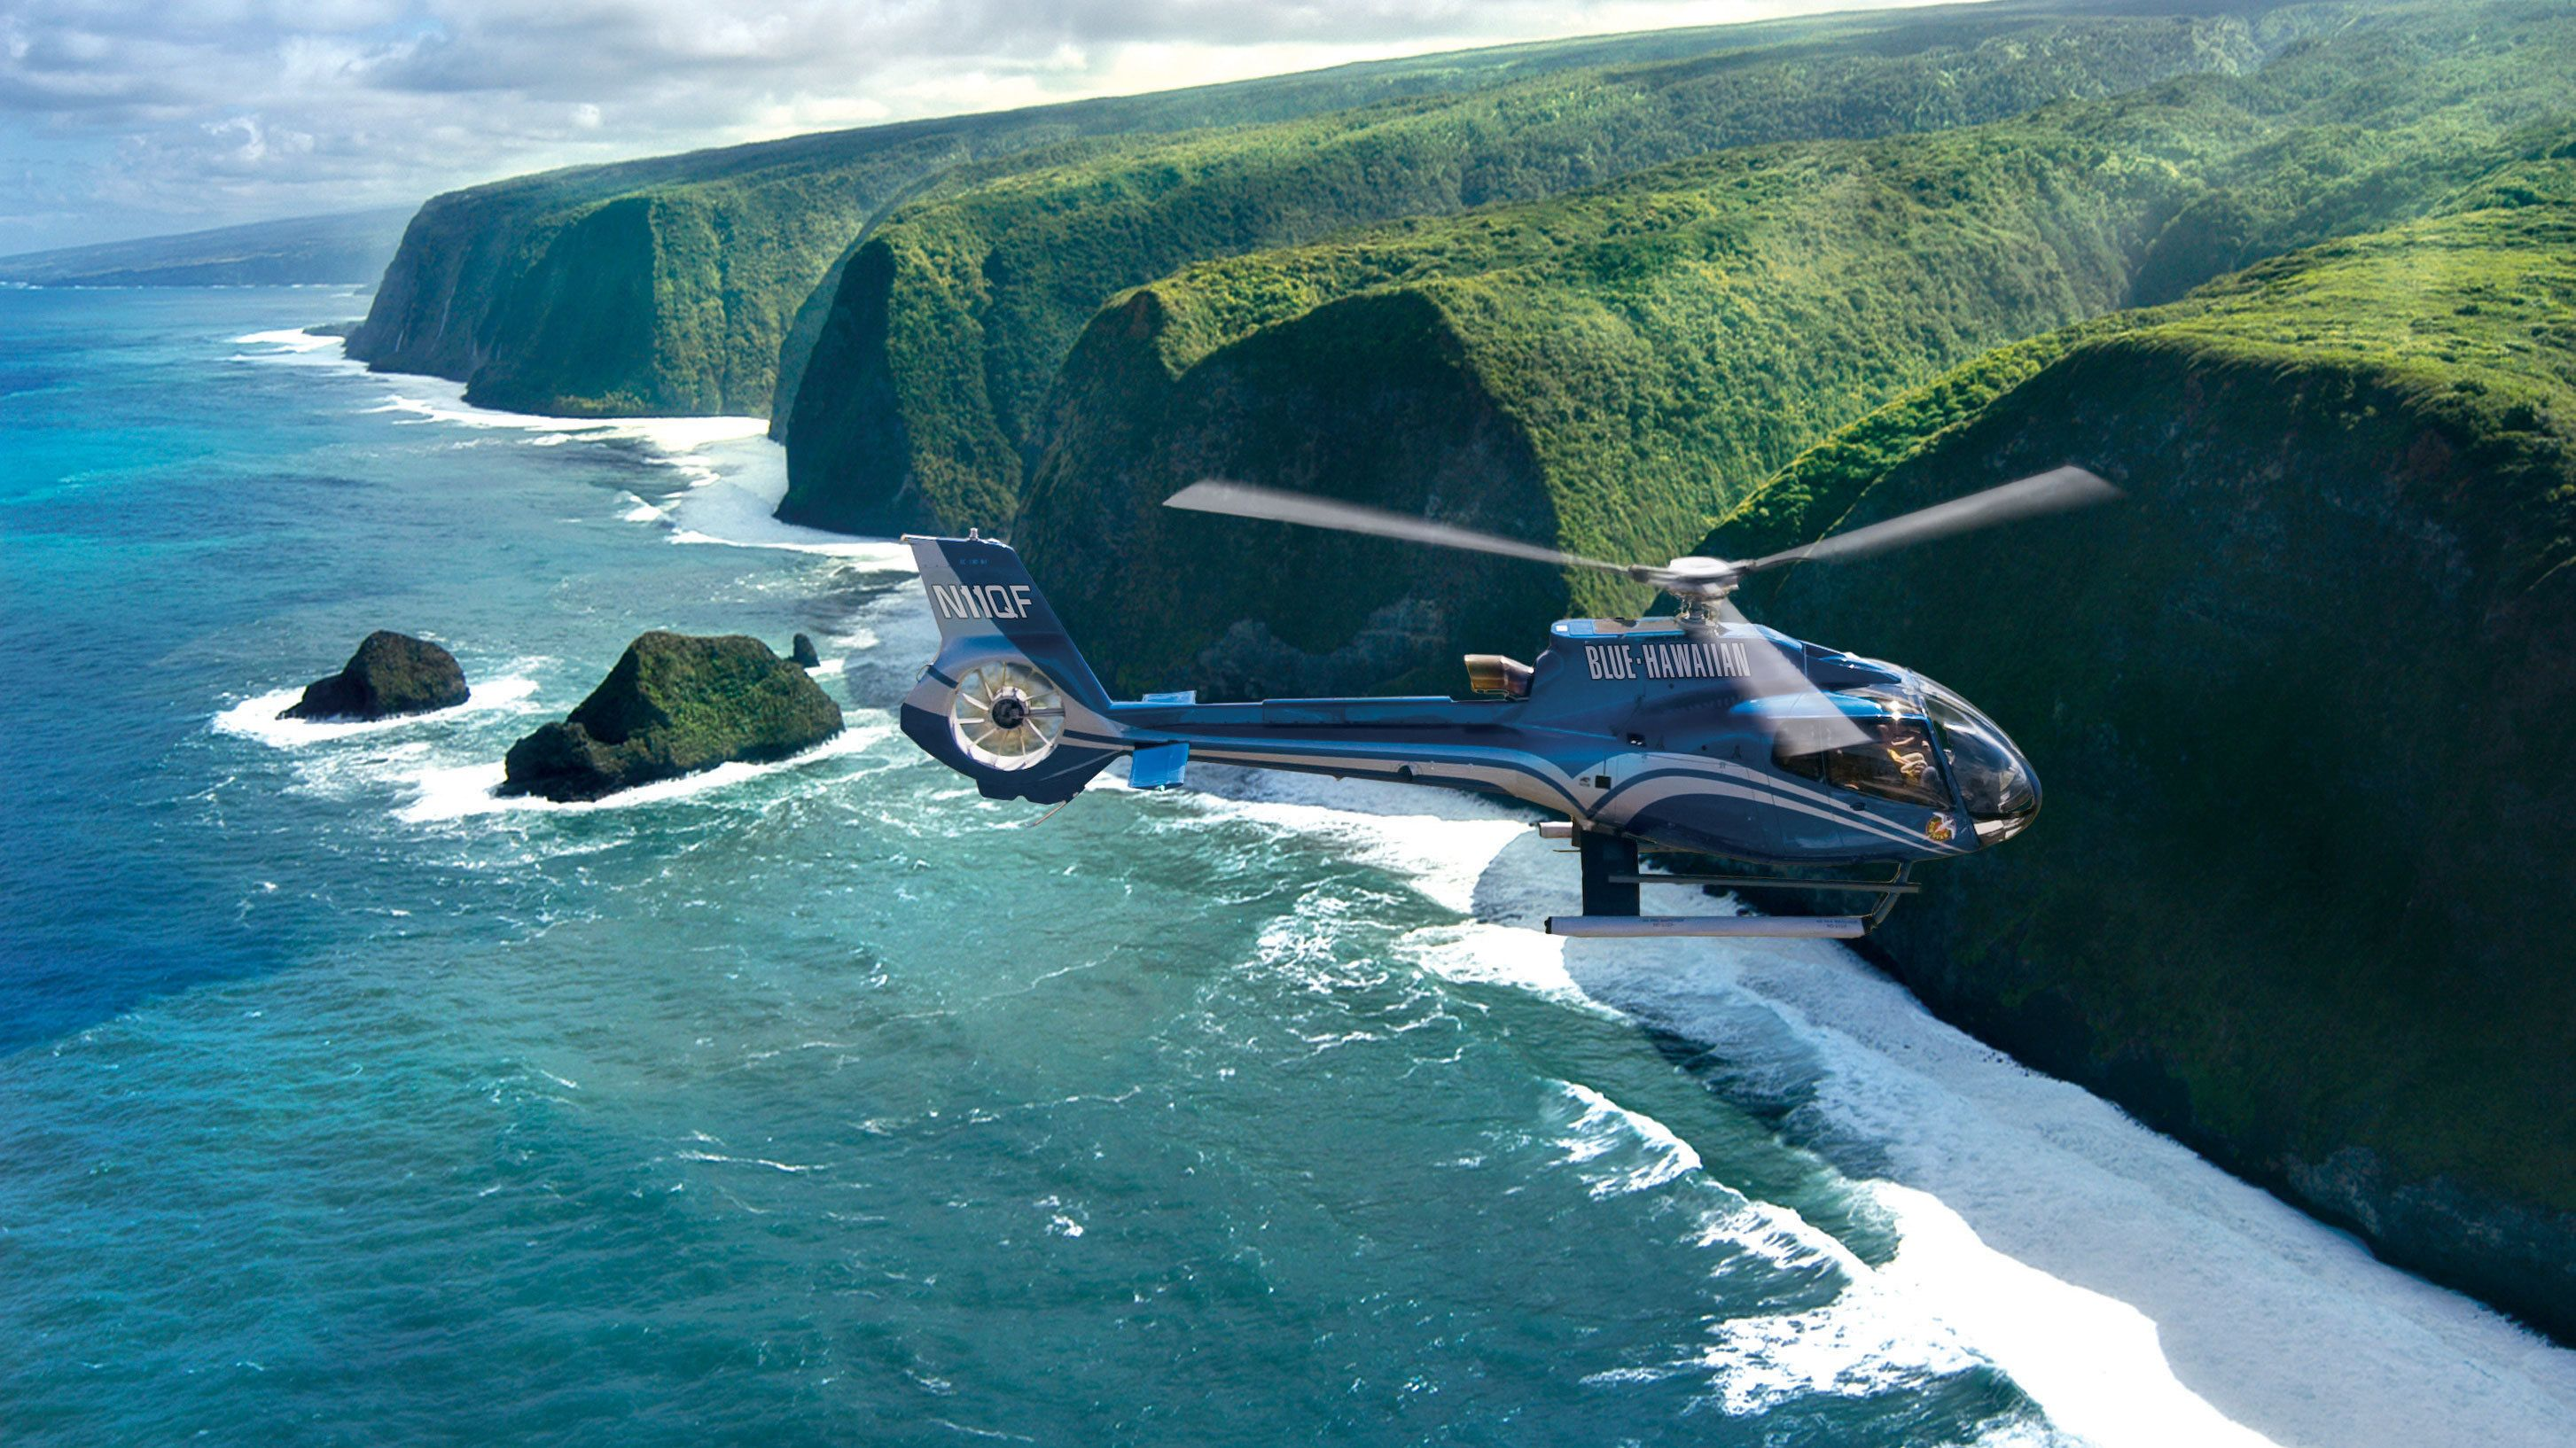 Helicopter fly over cliffs on the Hawaii shore line